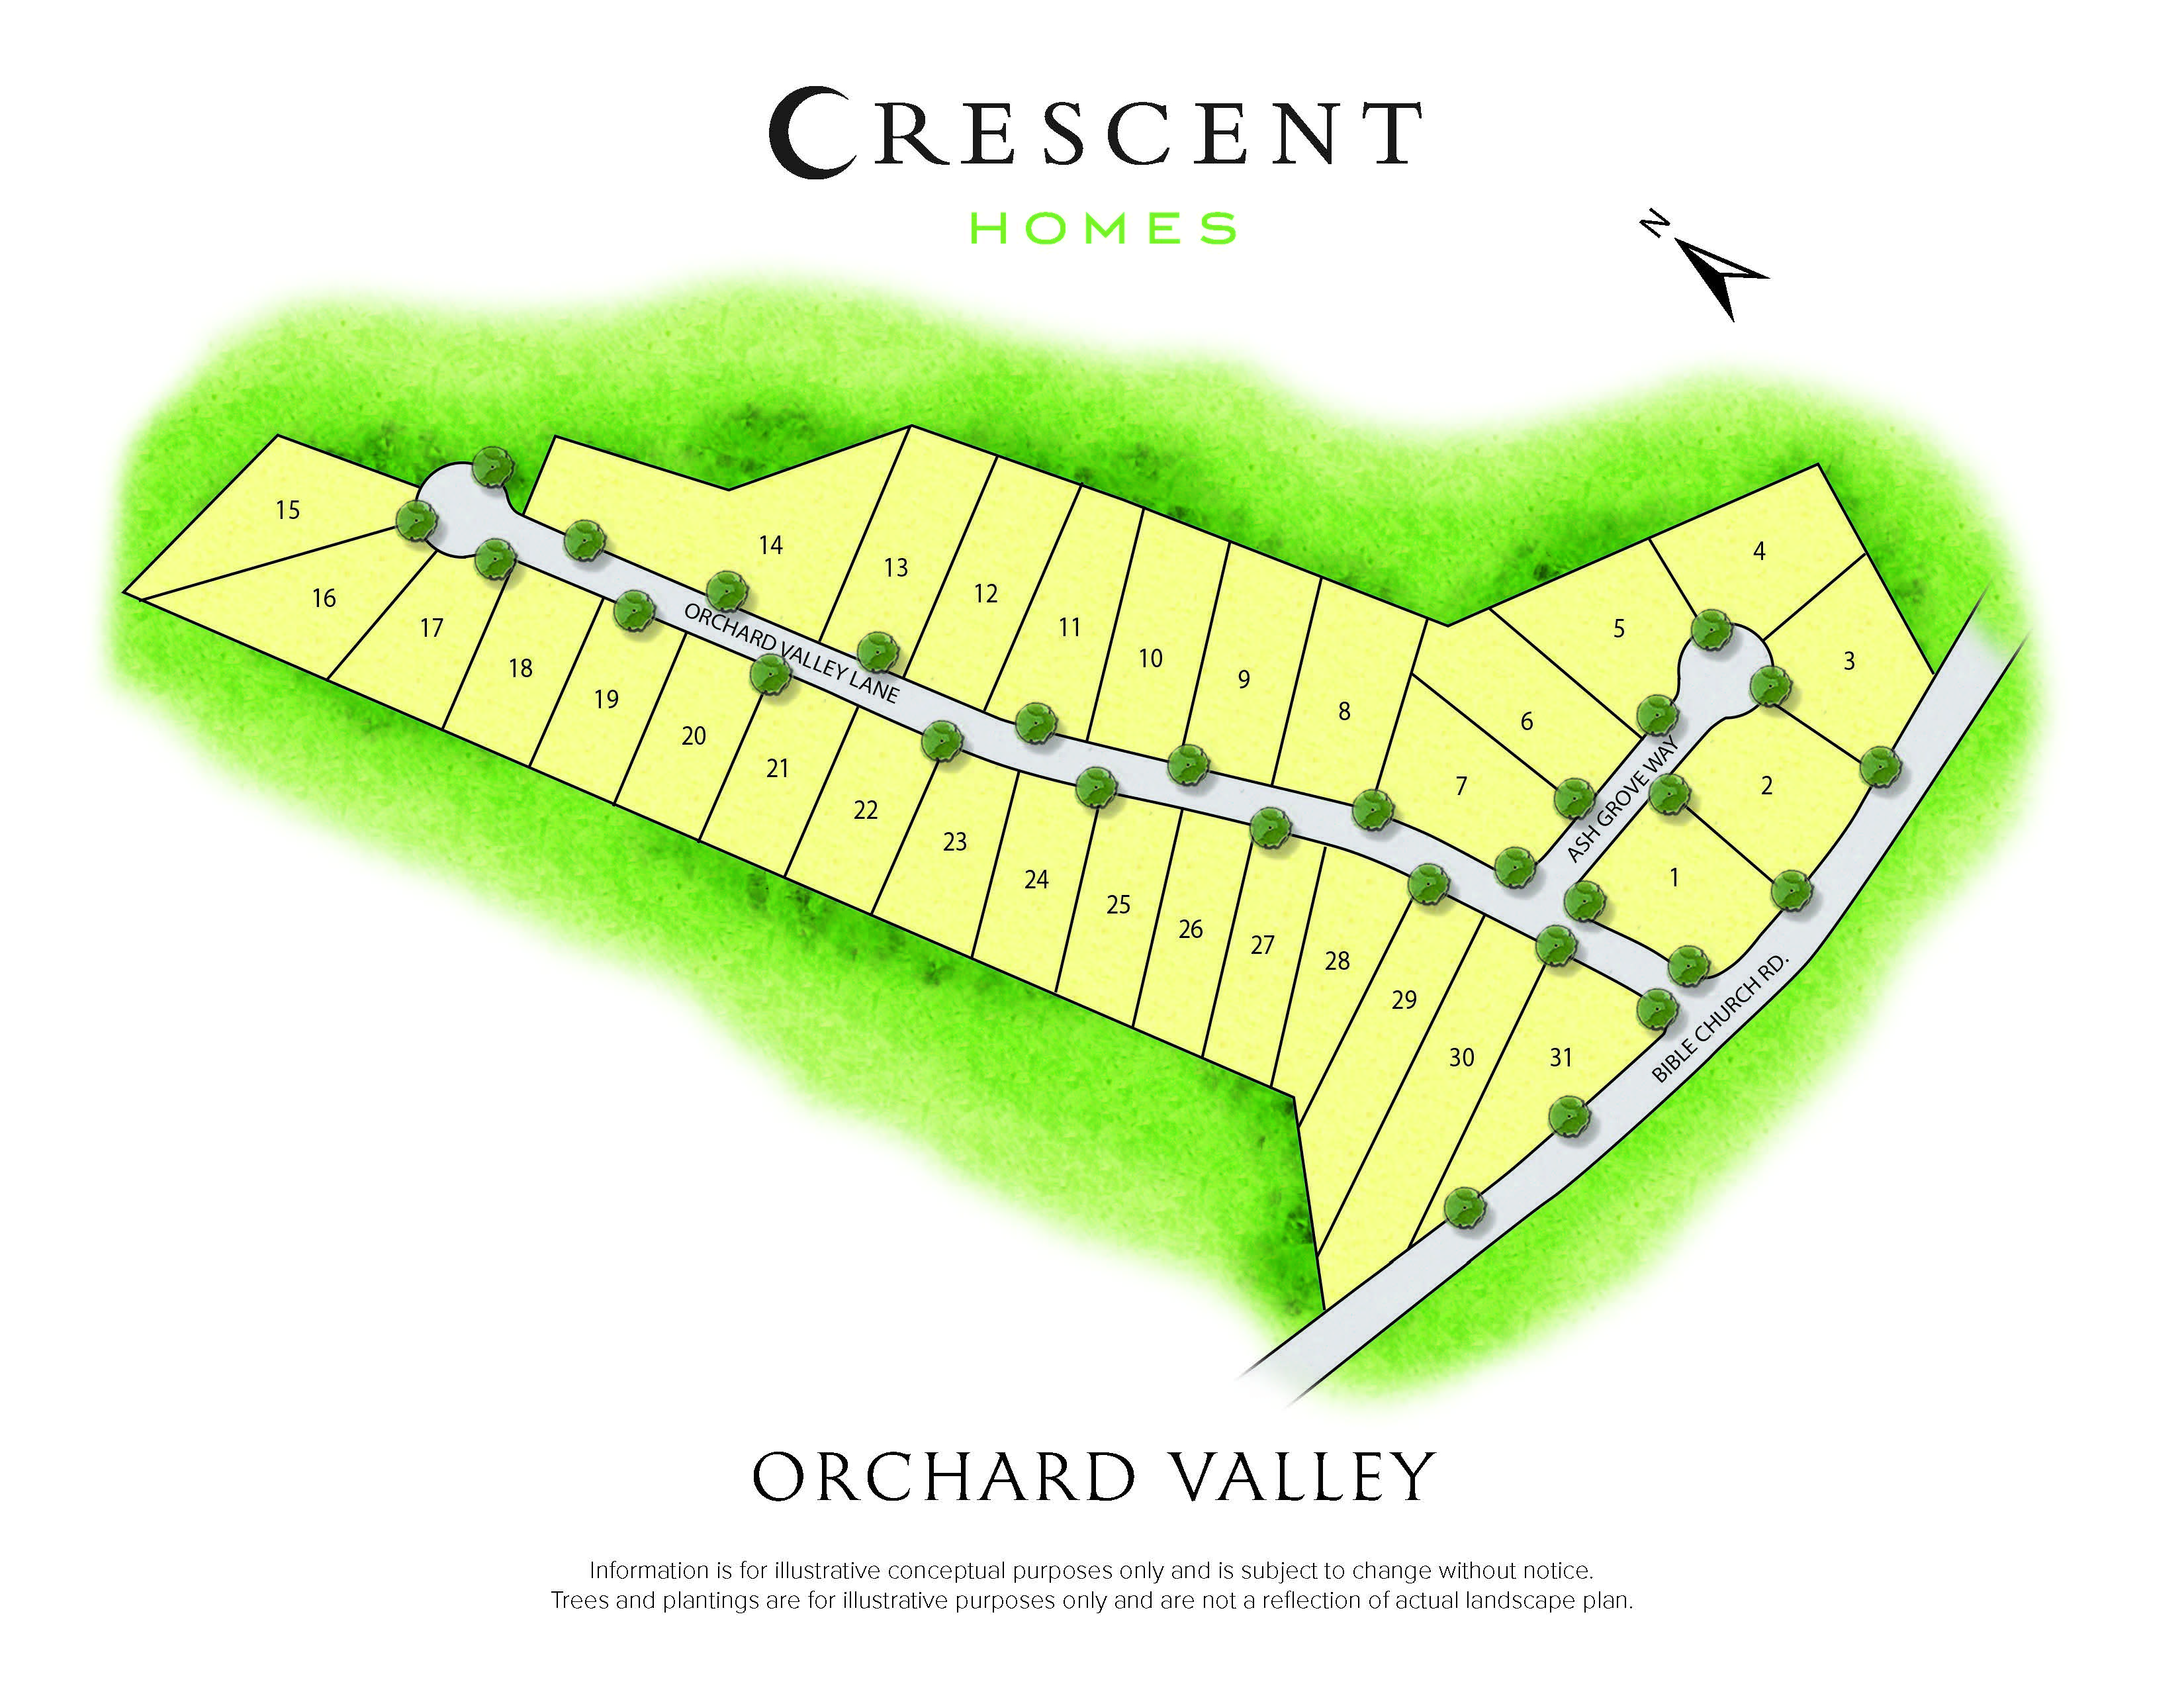 Boiling Springs, SC Orchard Valley New Homes